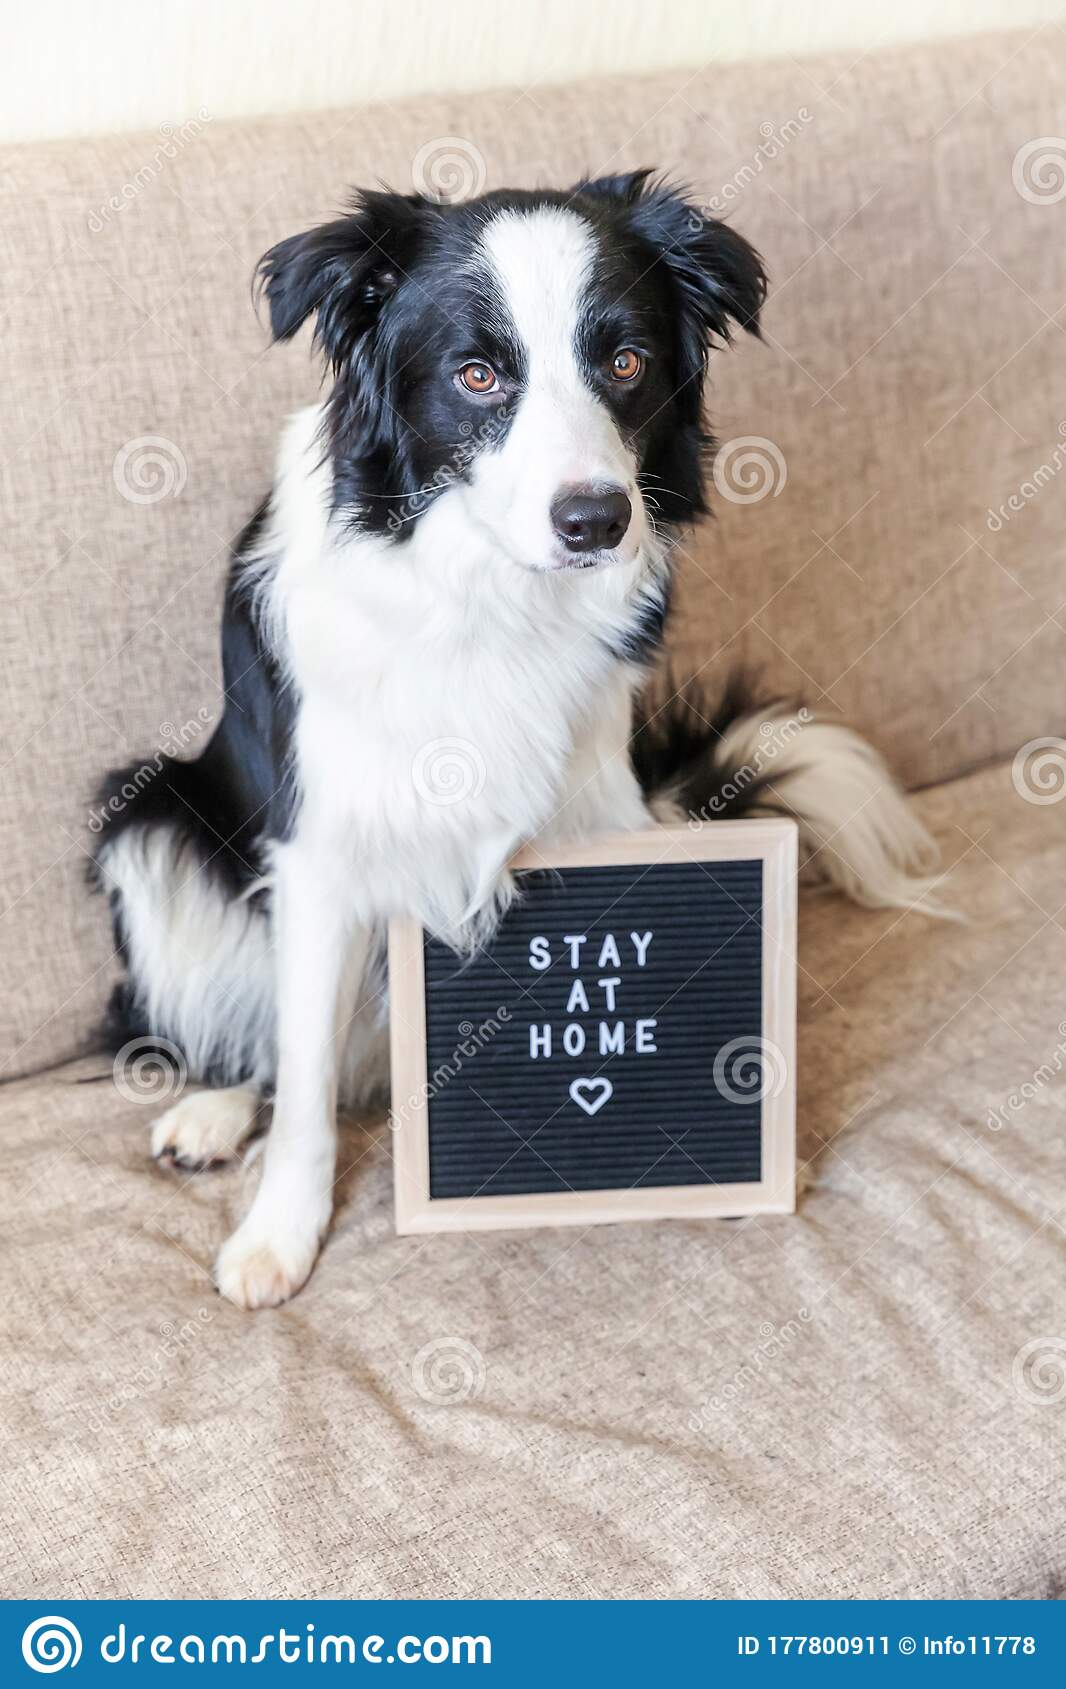 Stay Home Funny Portrait Of Cute Puppy Dog On Couch With Letter Board Inscription Stay At Home Word New Lovely Member Of Family Stock Image Image Of Animal Letter 177800911